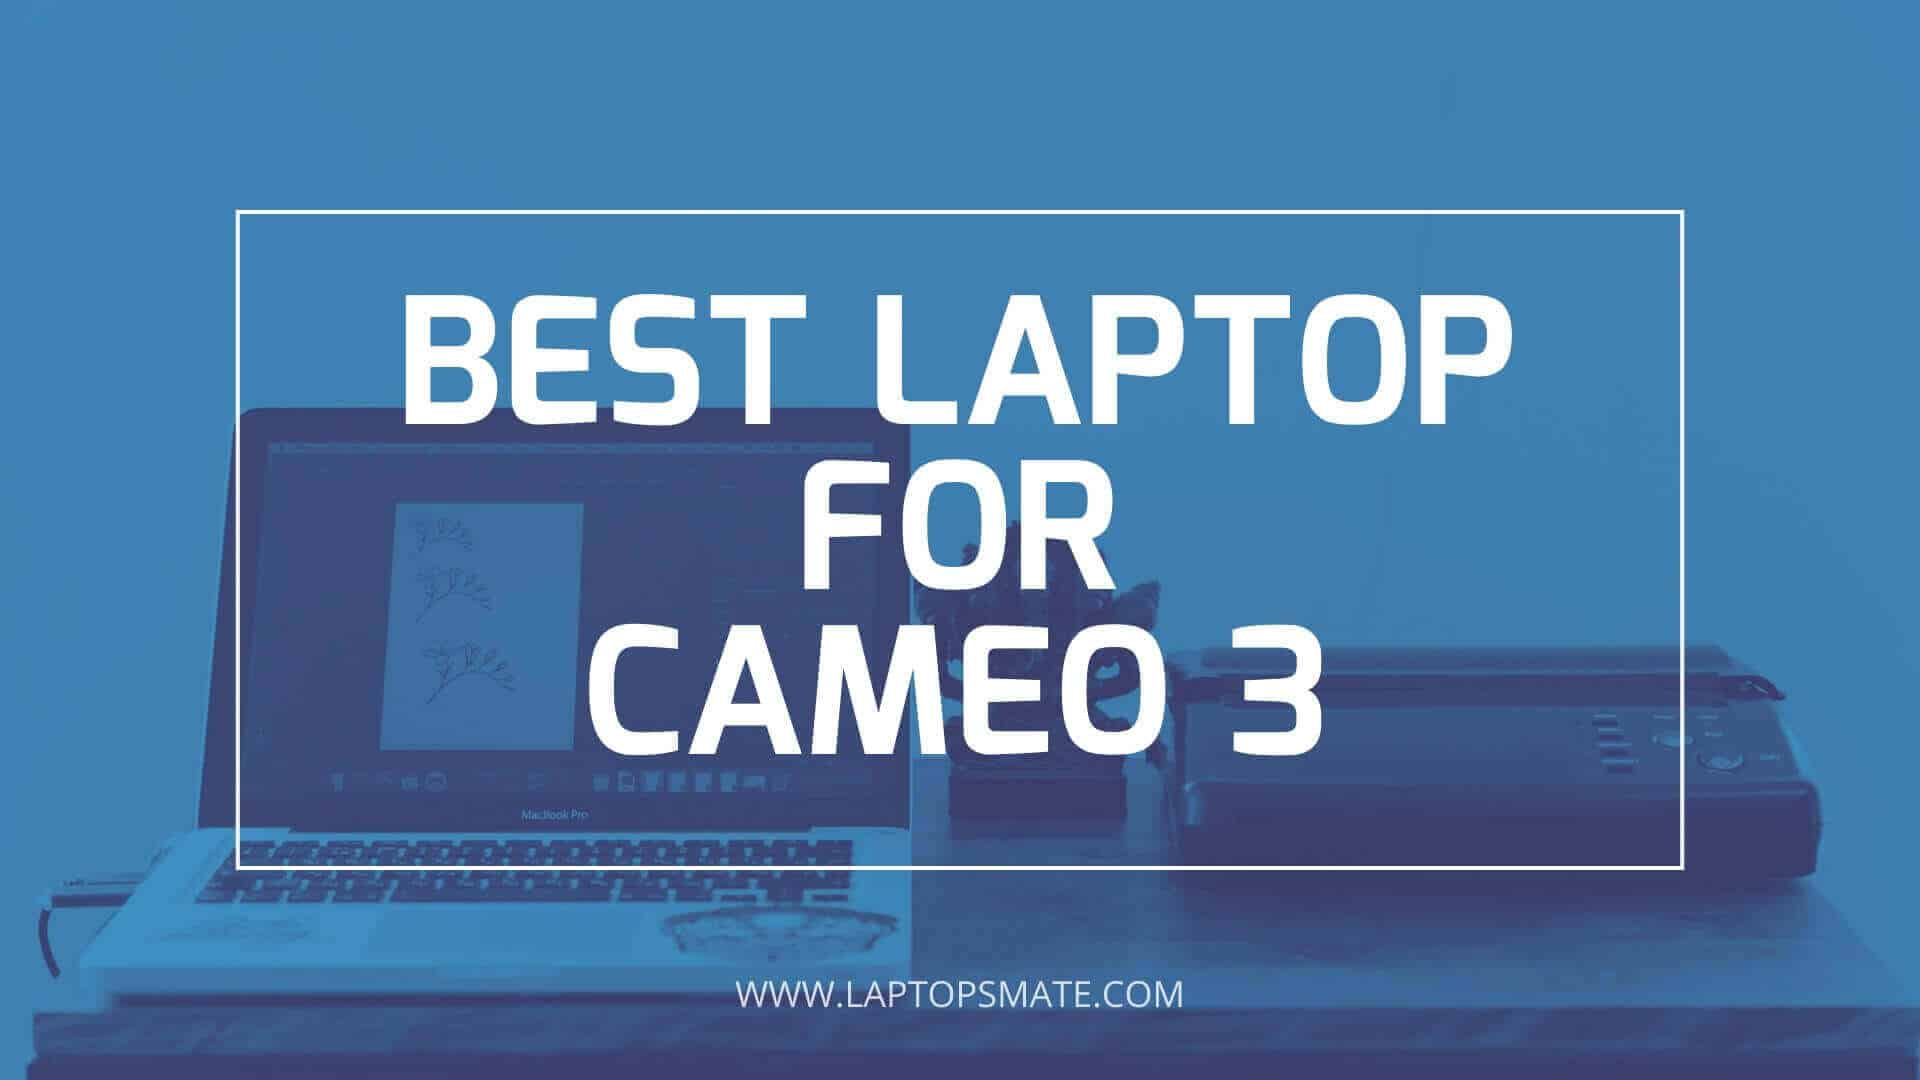 Best Laptop for Cameo 3